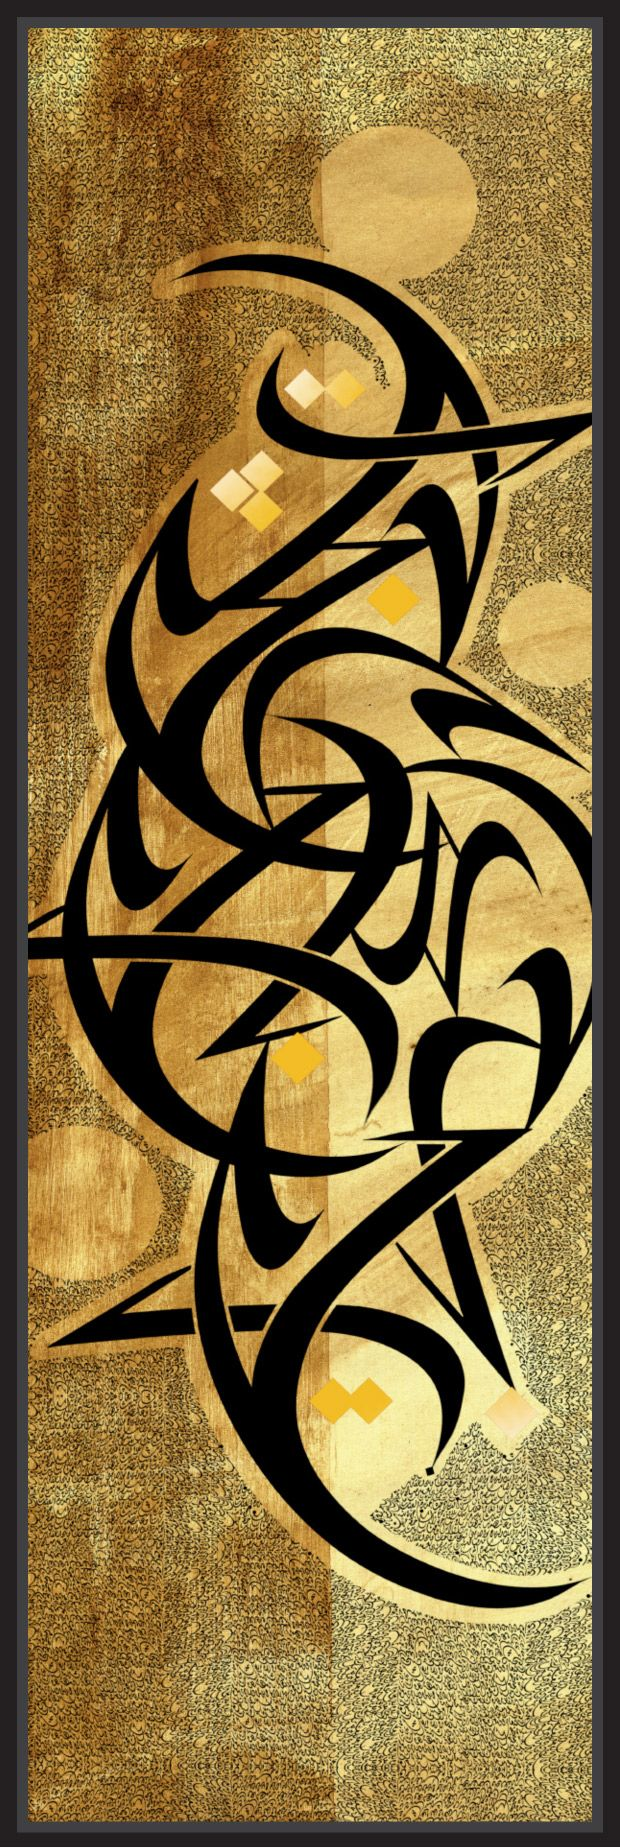 DesertRose:::calligraphy art::: Arabic Letters. Small lettering as print in background